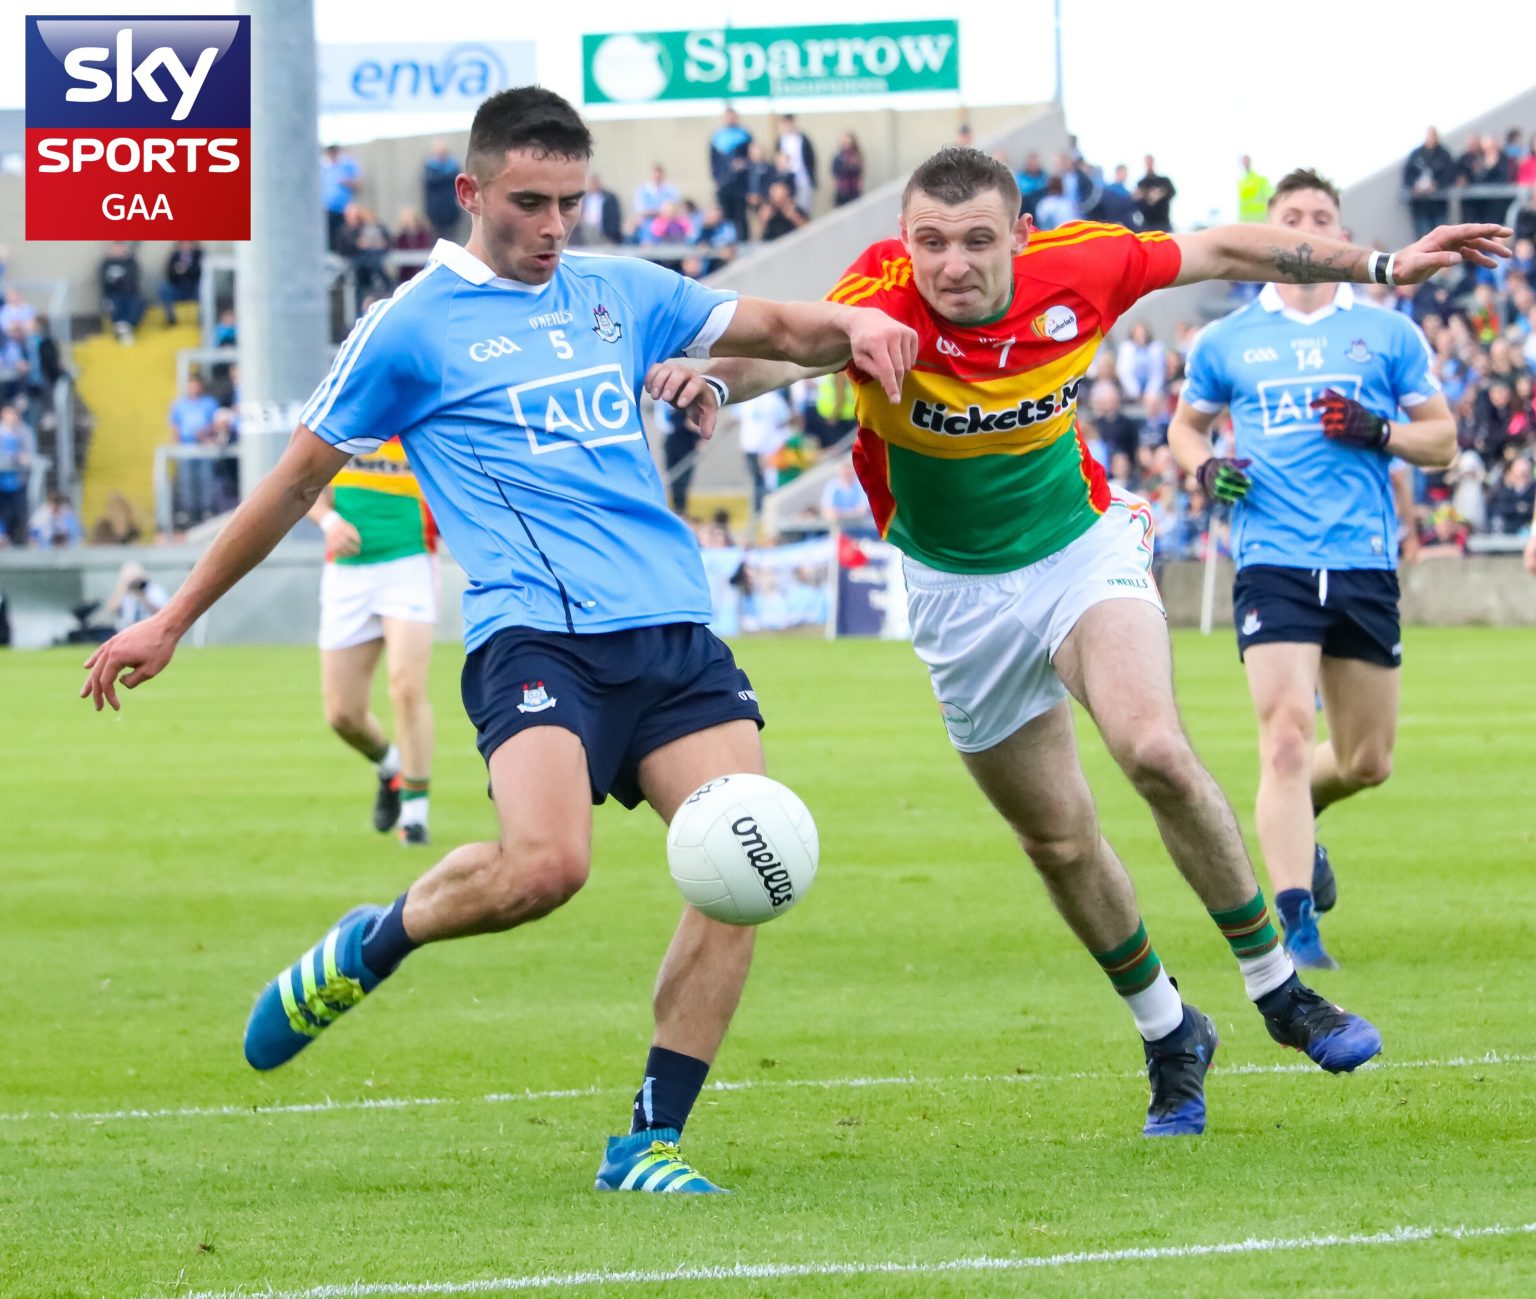 Dublin Player In Sky Blue Jersey About To Kick White Ball As He Is Tackled By A Carlow Player In a Red, Yellow And Green Jersey On A Green Pitch With A Sky Sports Logo